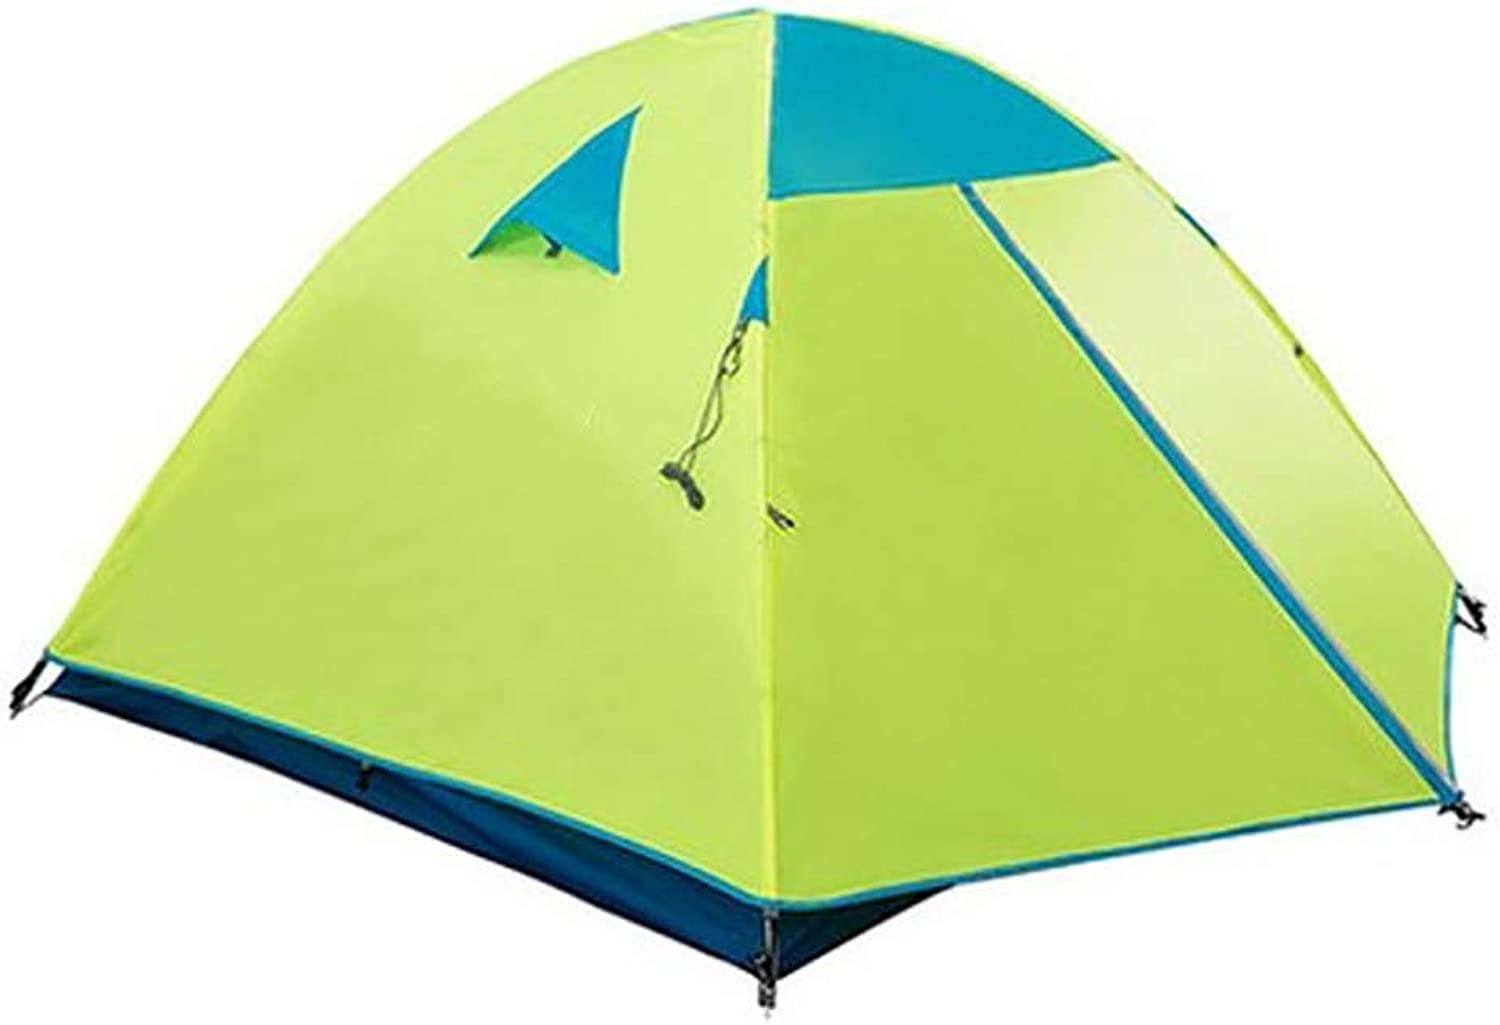 Outdoor Tent Camping Tent Tent Weatherproof Breathable Double Season Three Season Tent,Green